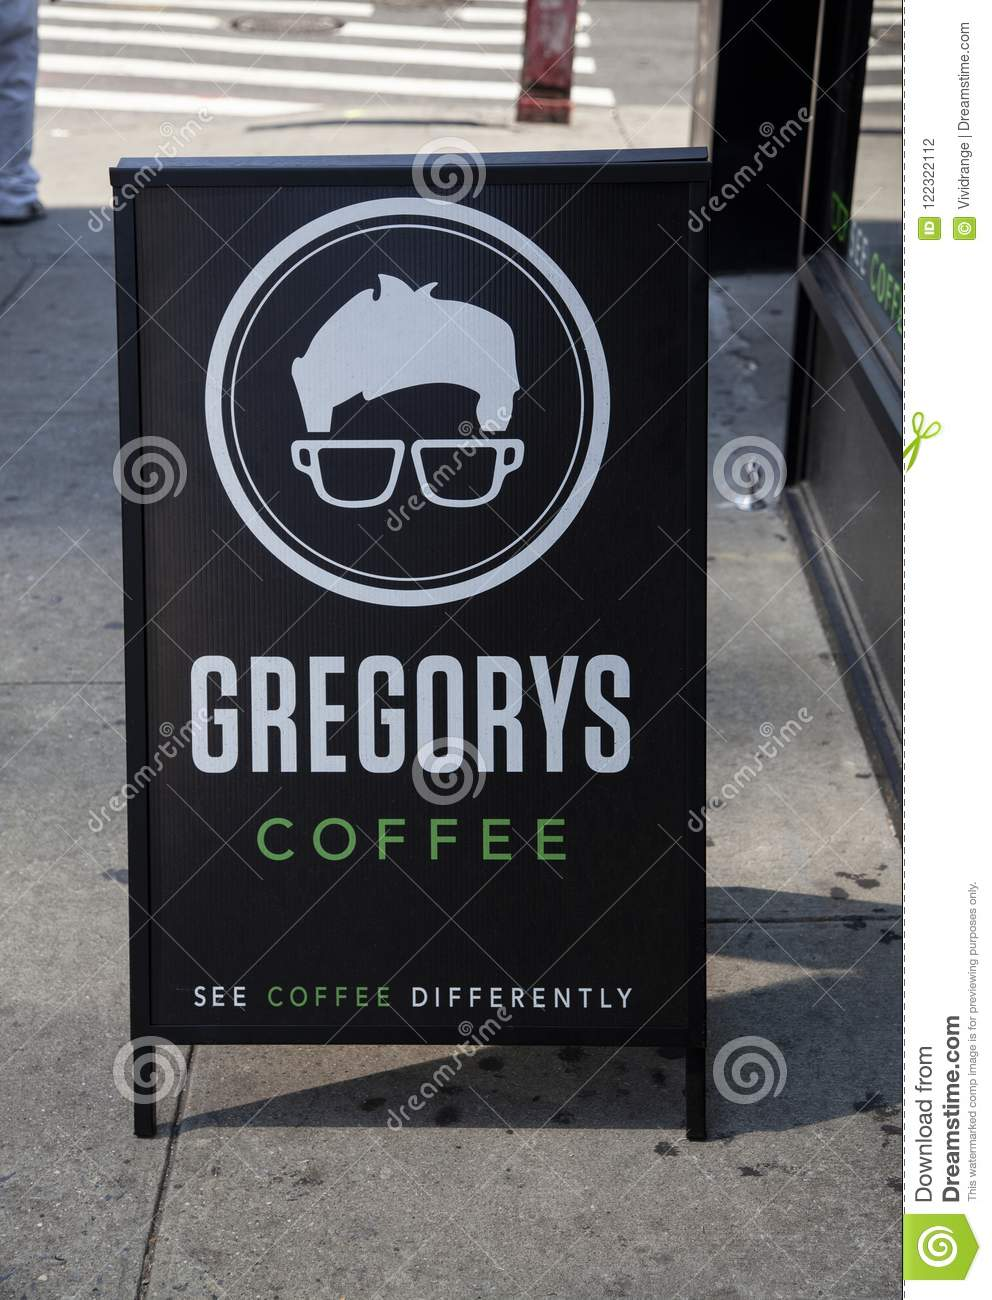 Gregory Coffee Shop in New York, U.S.A.